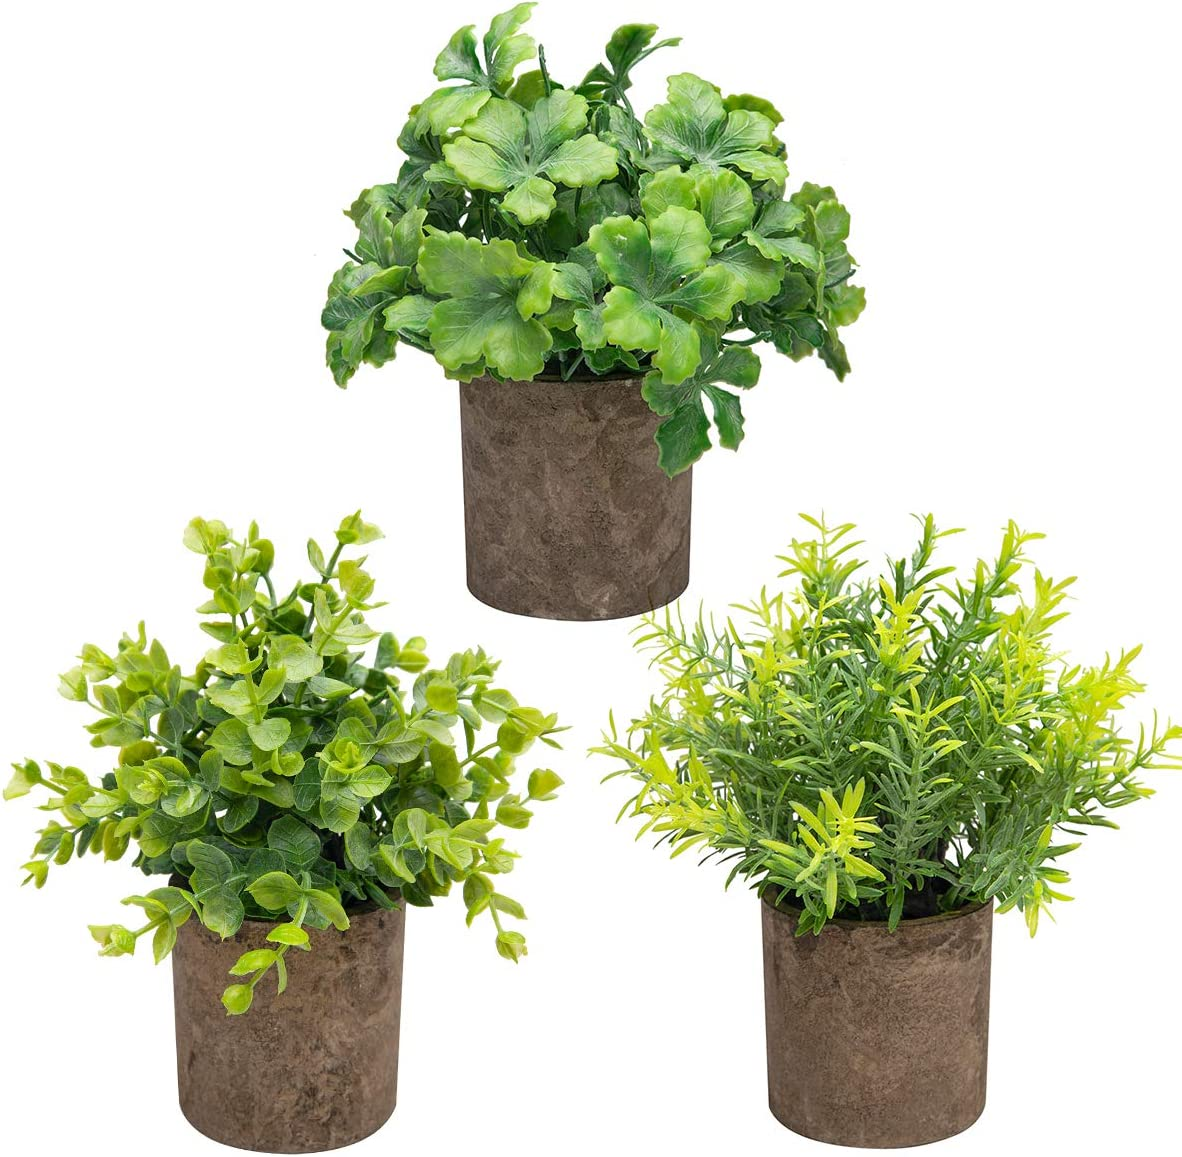 THE BLOOM TIMES Set of 3 Small Potted Artificial Plants Plastic Fake Greenery Boxwood Rosemary Mini Faux Plants in Pots for Rustic Home Office Desk Table Farmhouse Bathroom Kitchen Indoor Decor